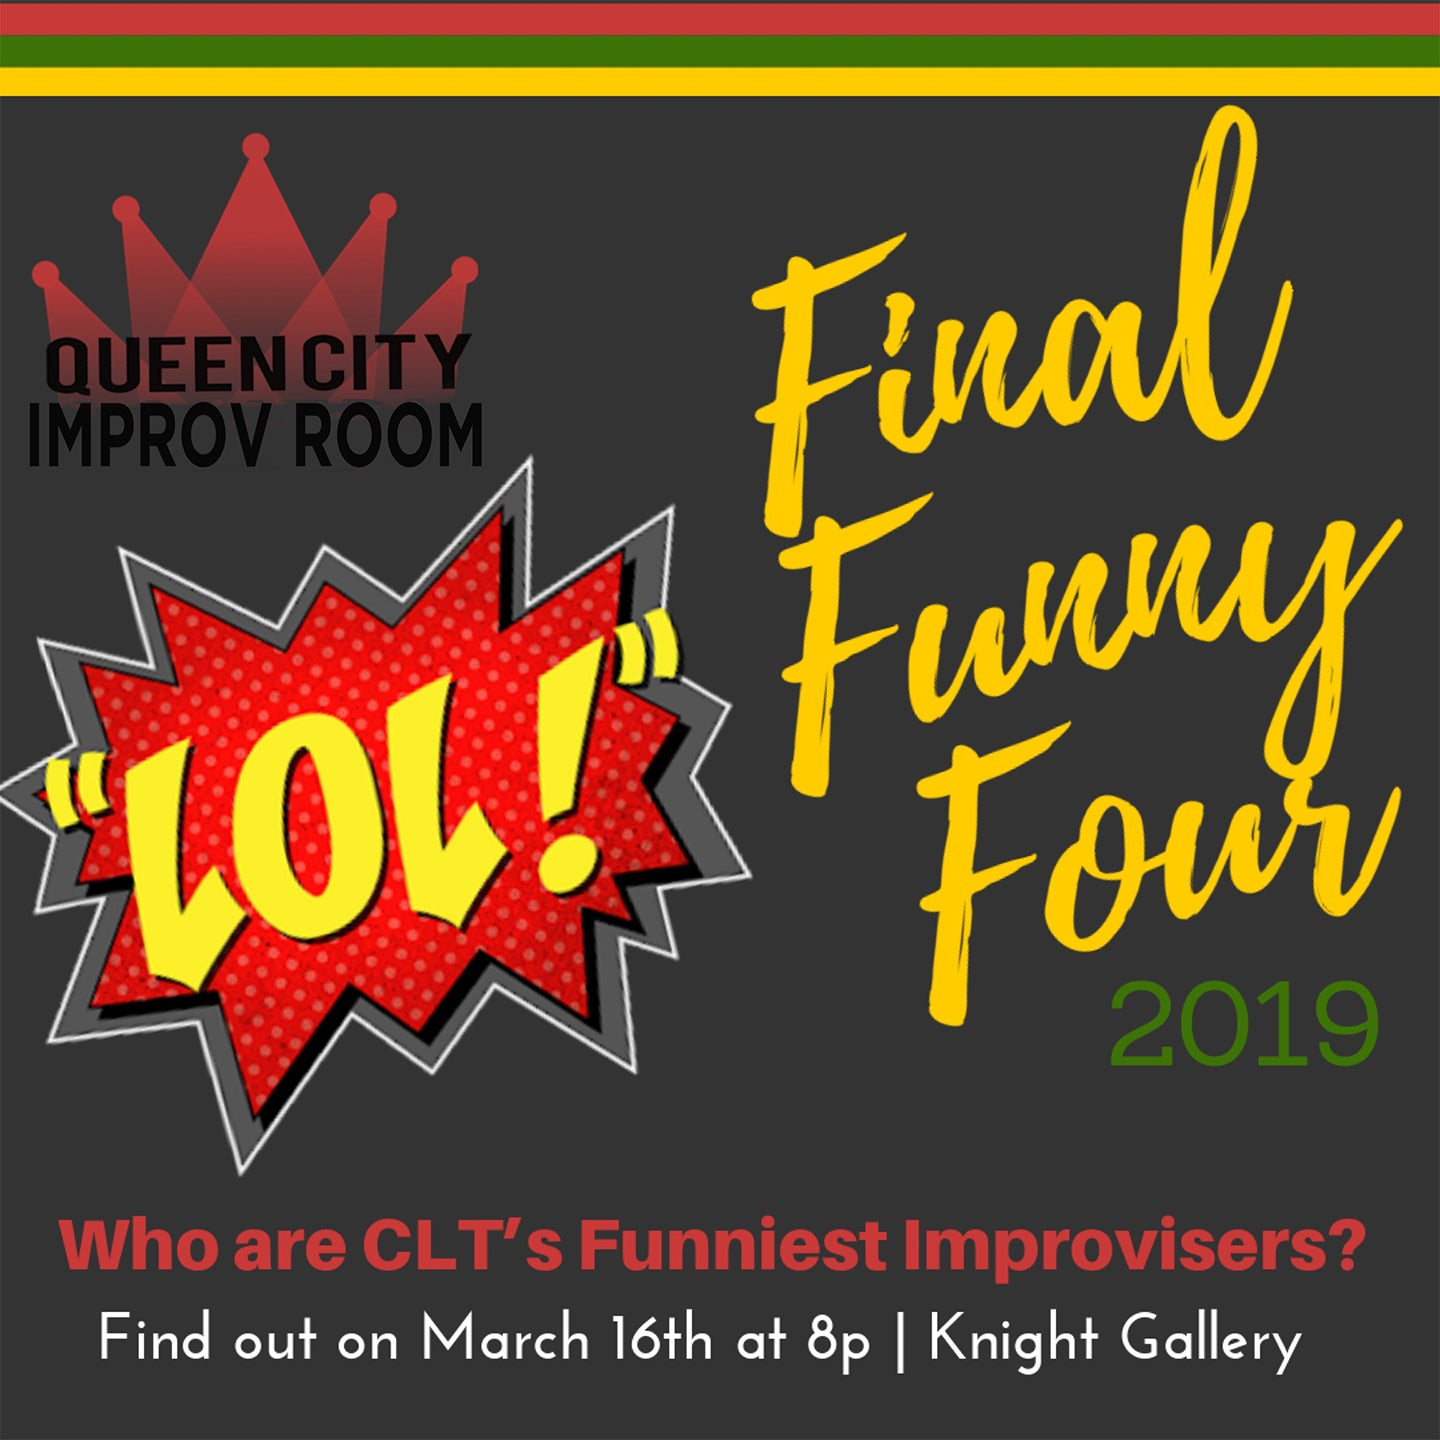 Queen City Improv Room: Final Funny Four 2019